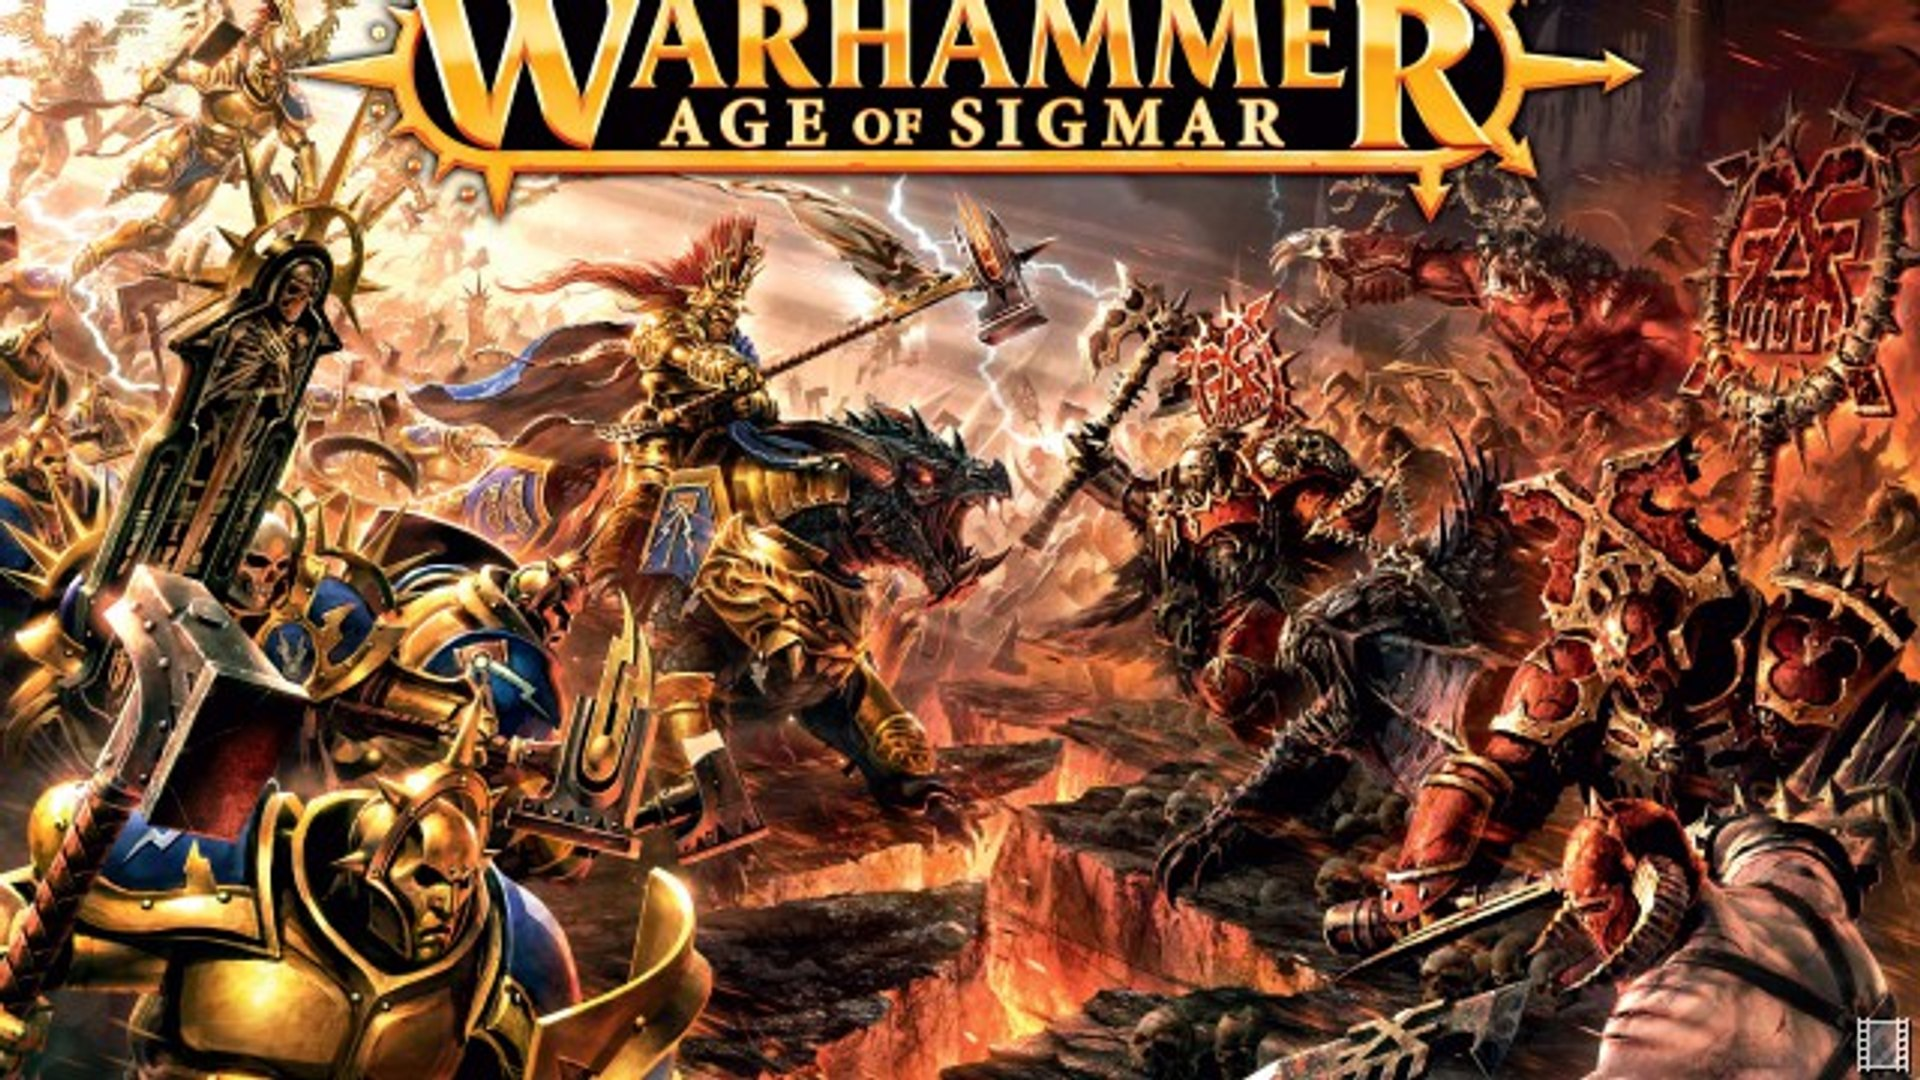 Escapist Podcast: 189: Warhammer Age of Sigmar & Other Fantasy Tabletop Games